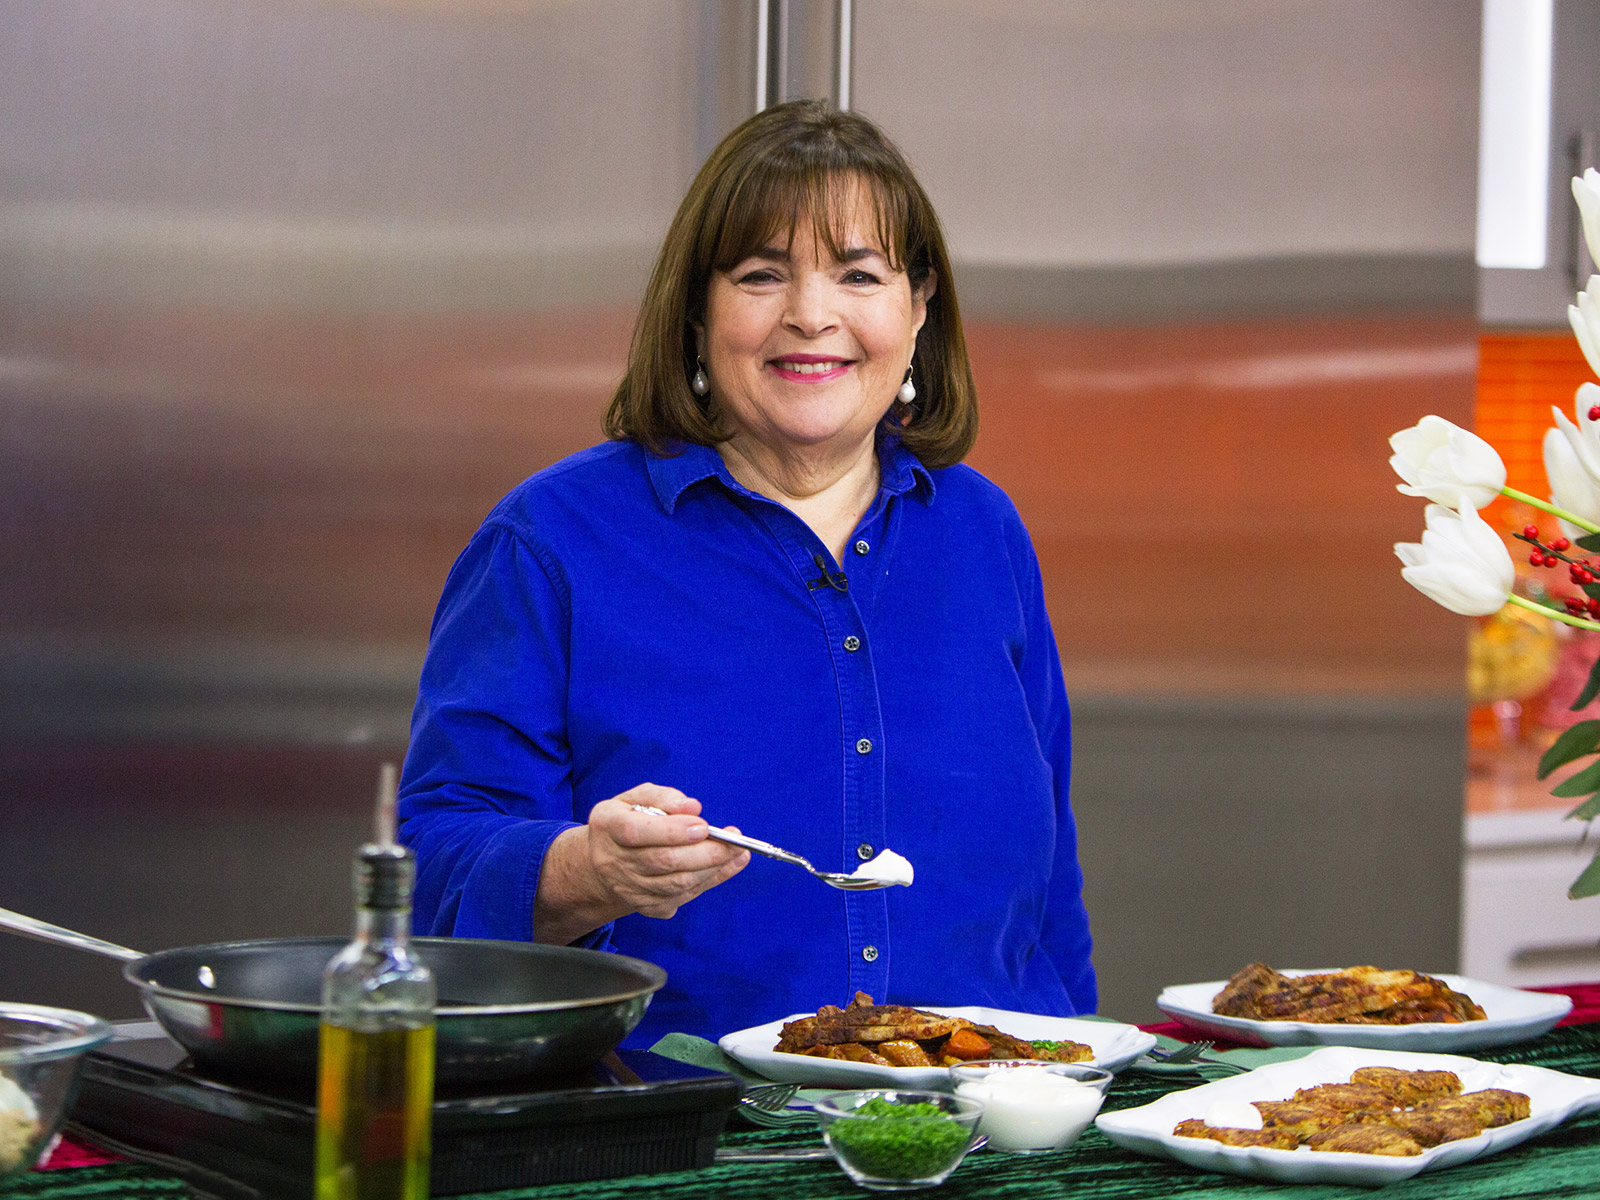 Cheerful Se Are Appetizers Ina Garten Serves To Party Guests Light Se Are Appetizers Ina Garten Serves To Party Guests Ina Garten Appetizers Make Ahead Ina Garten Appetizers C nice food Ina Garten Appetizers